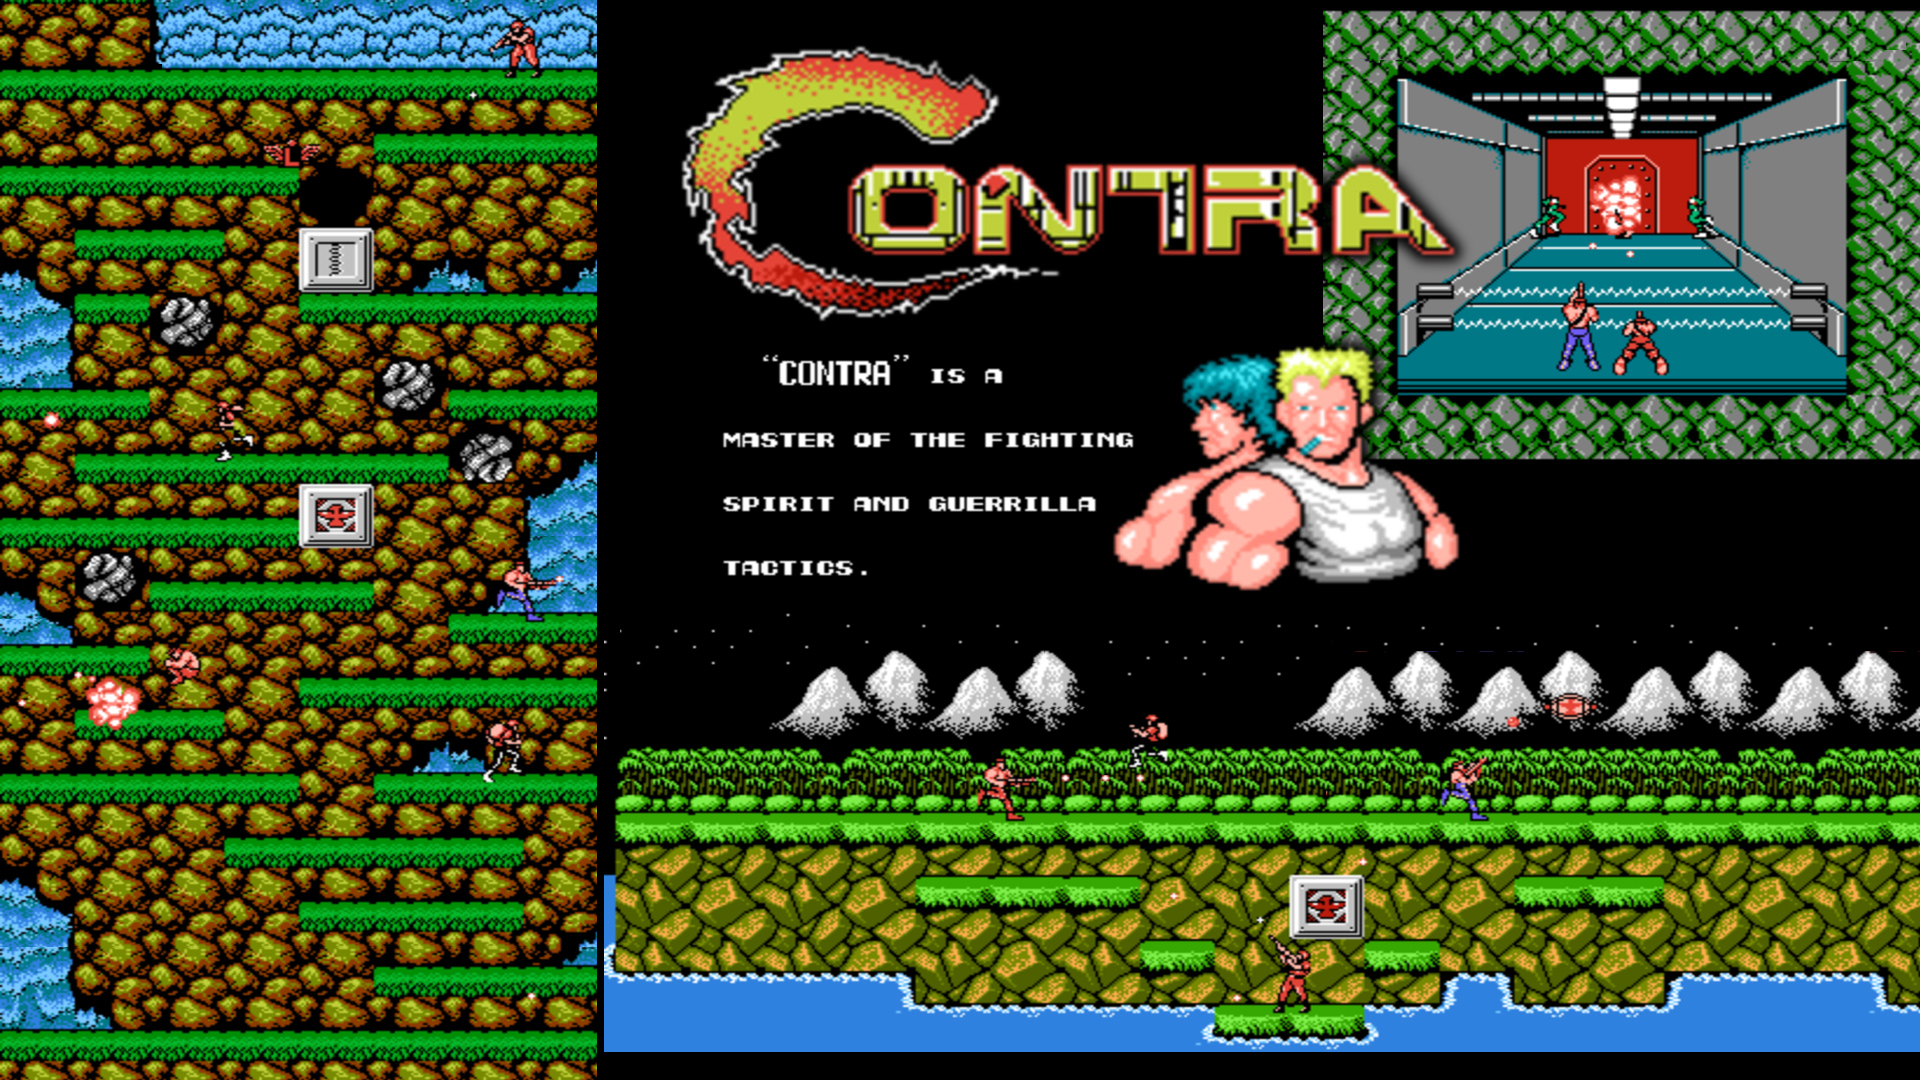 contra hd wallpaper background image 1920x1080 id